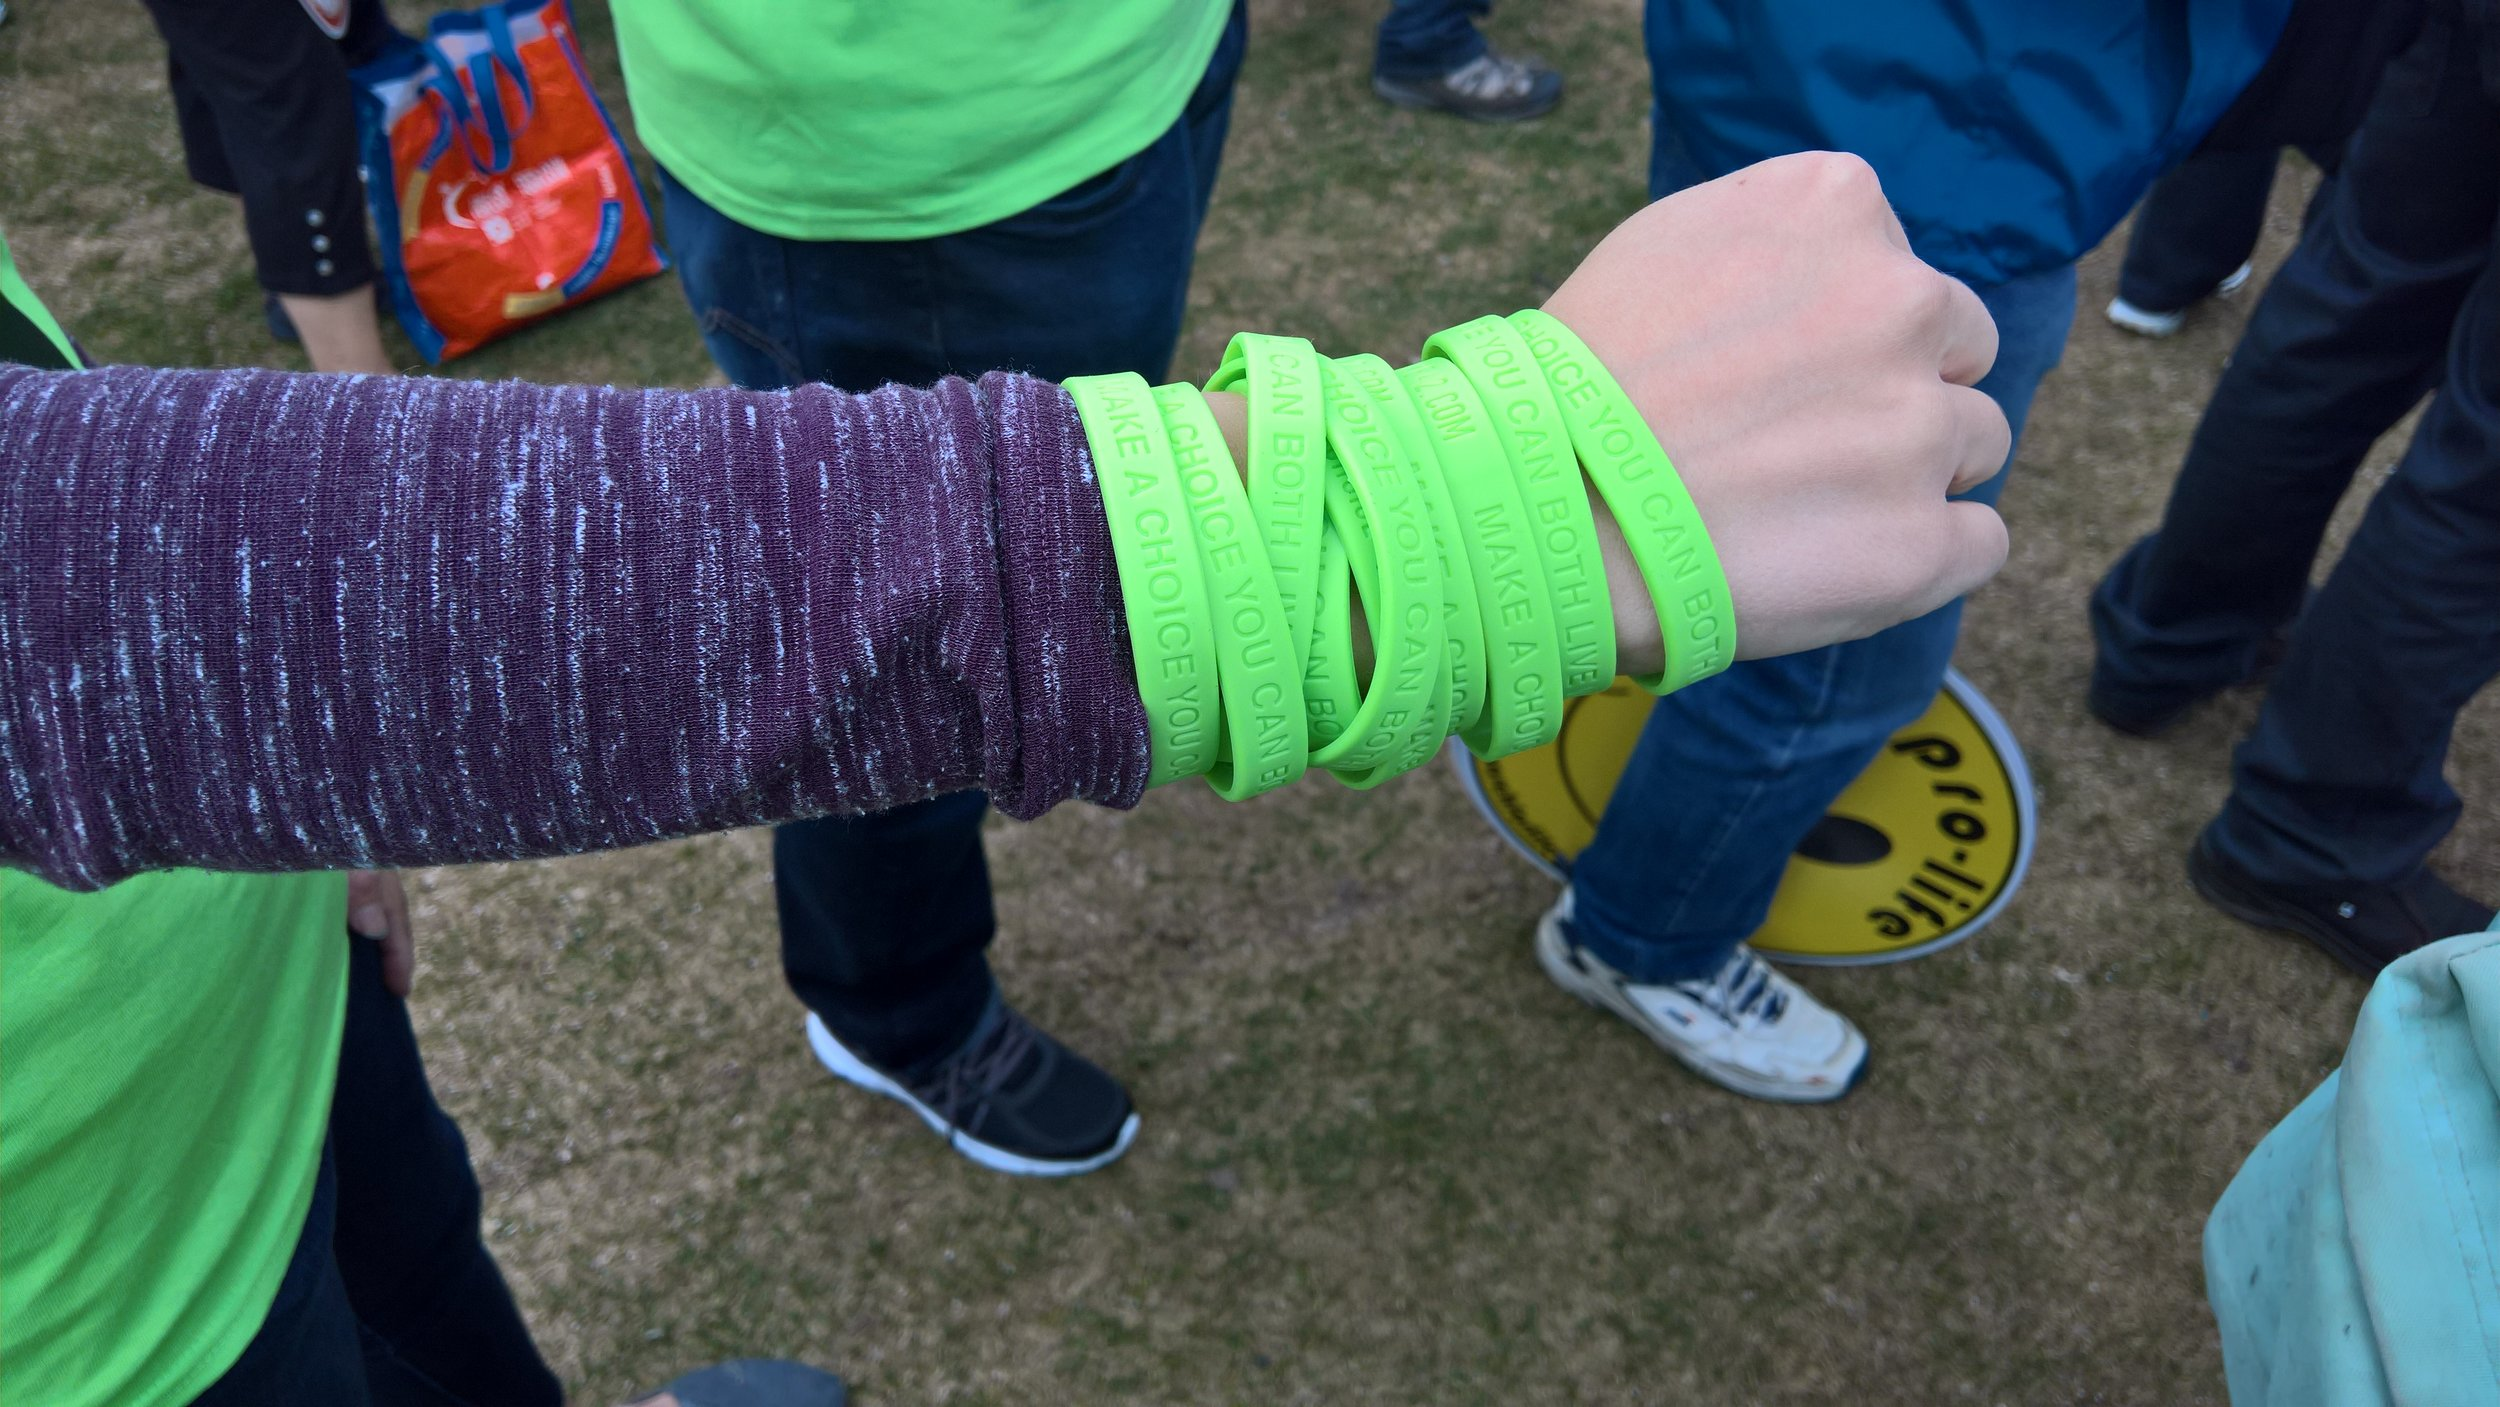 Our free CHOICE42 bracelets were gone in a flash!